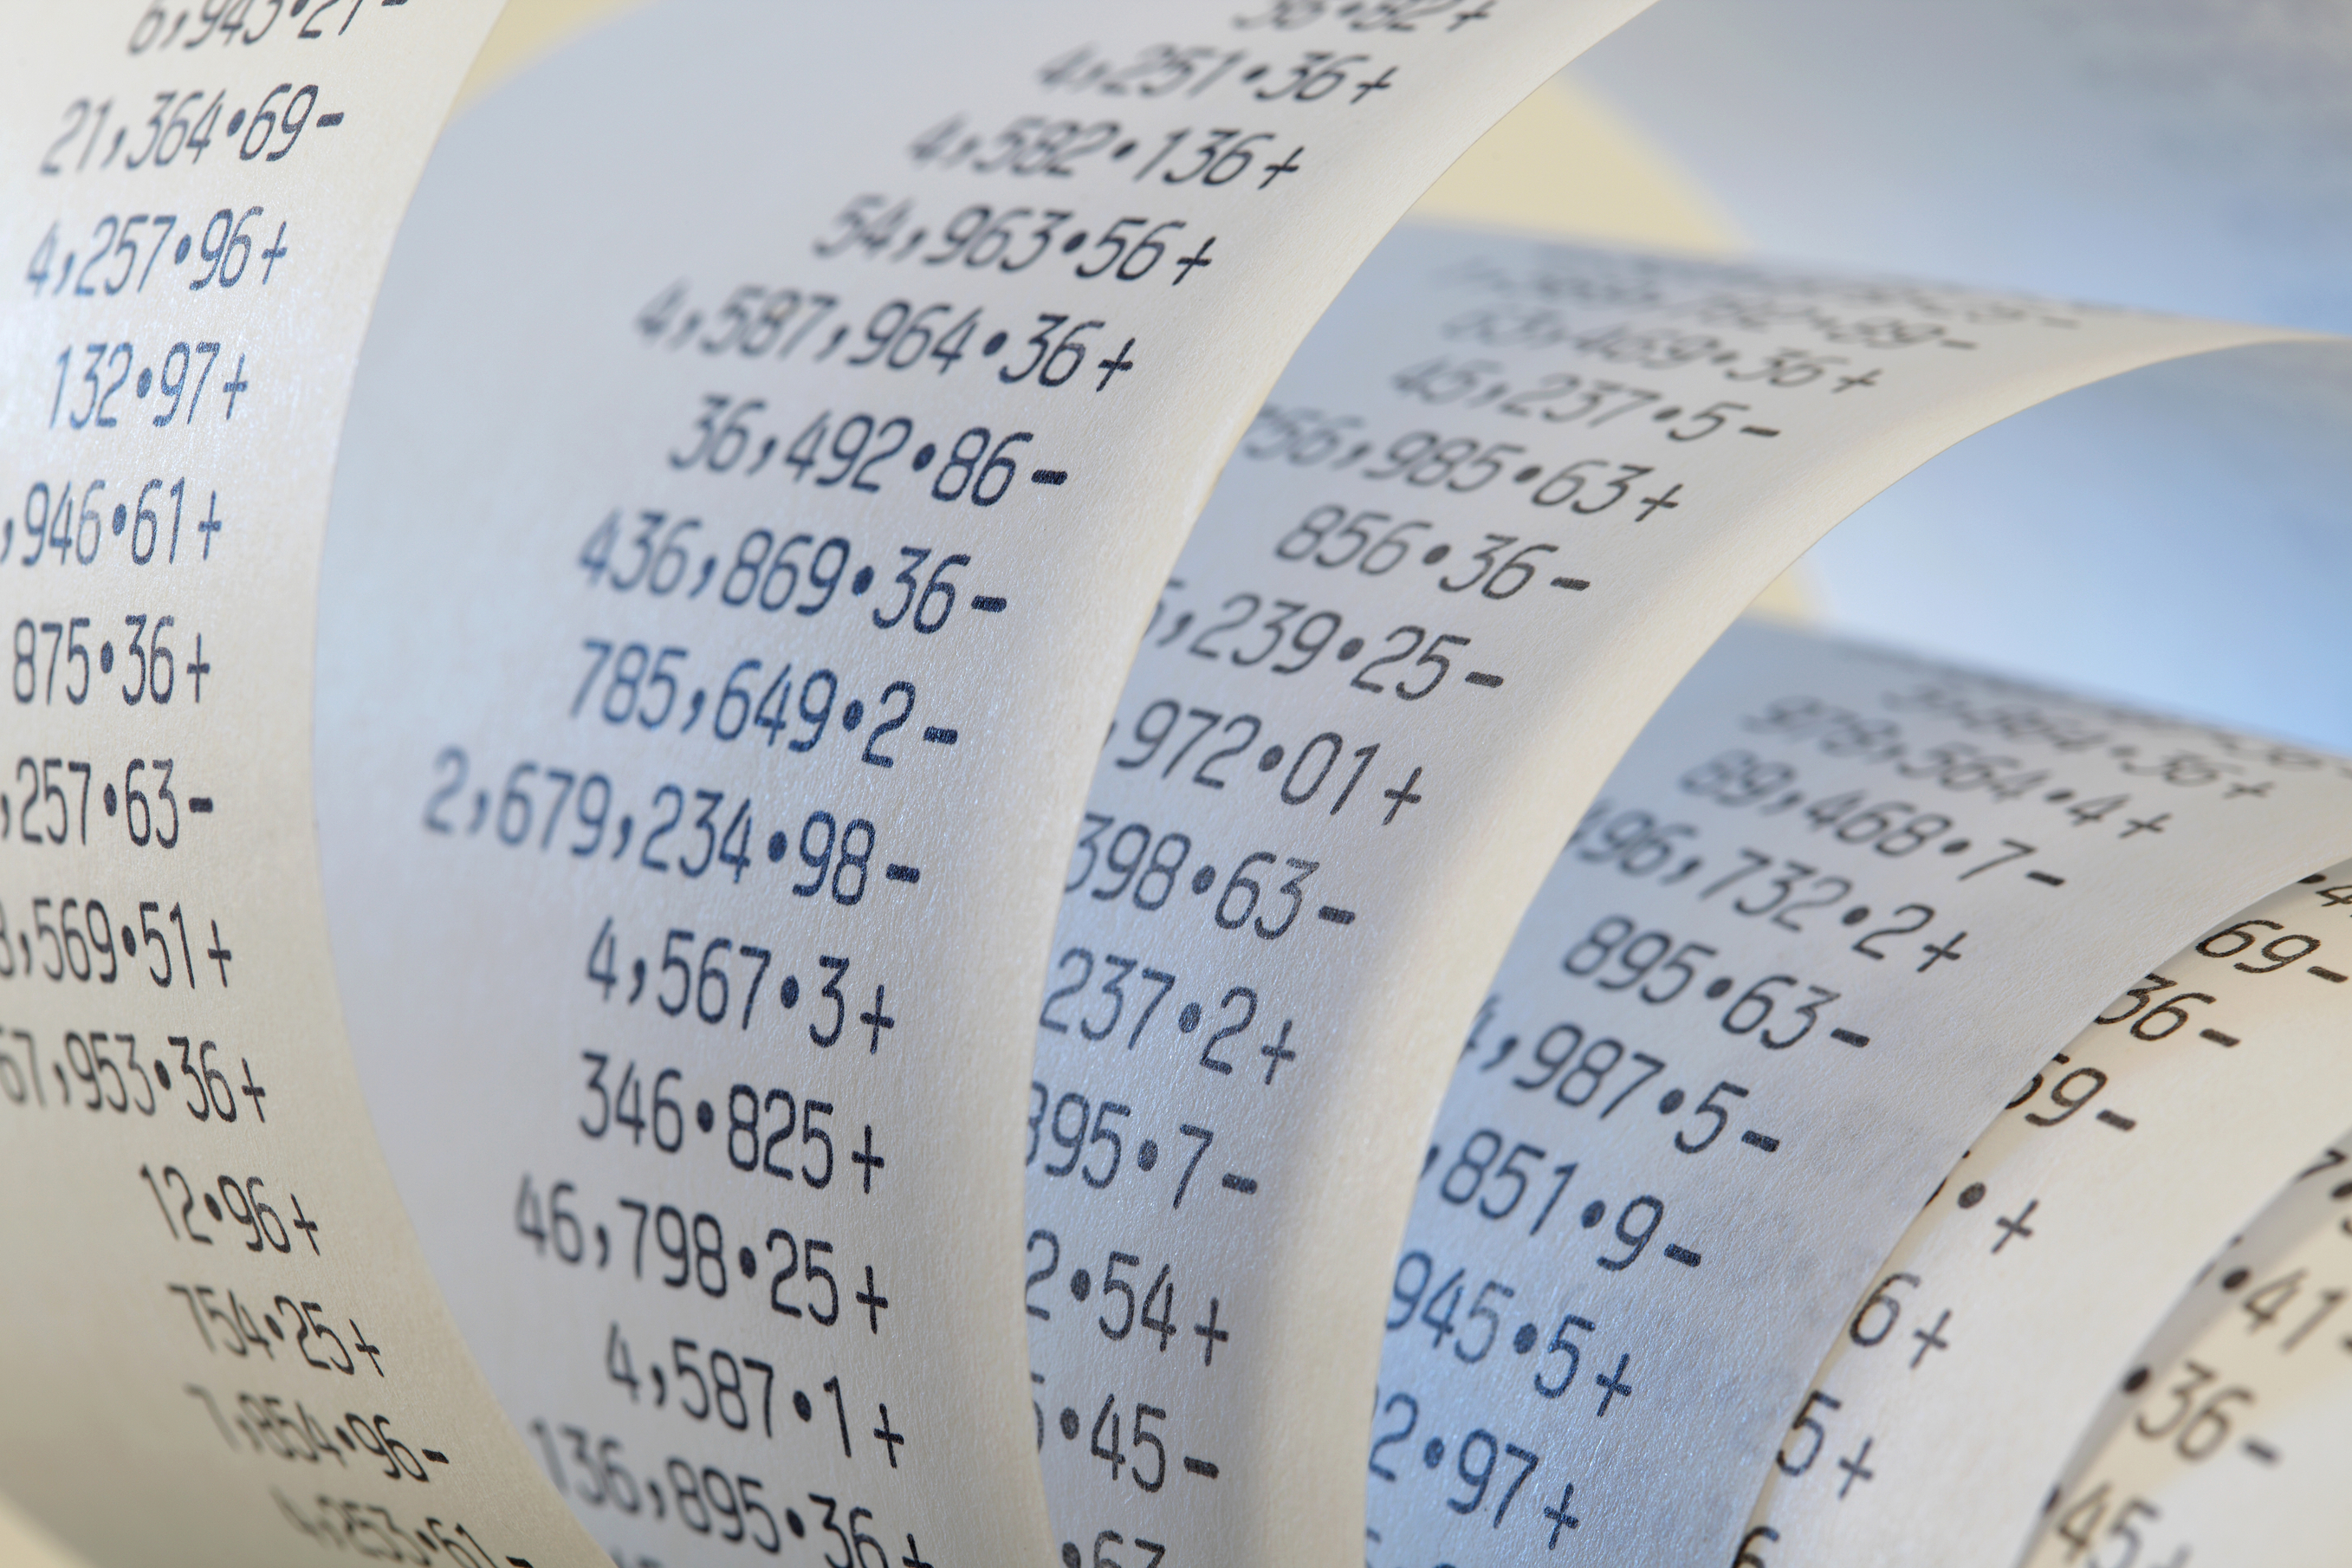 Printing Calculator paper tape rolled up, in blue light